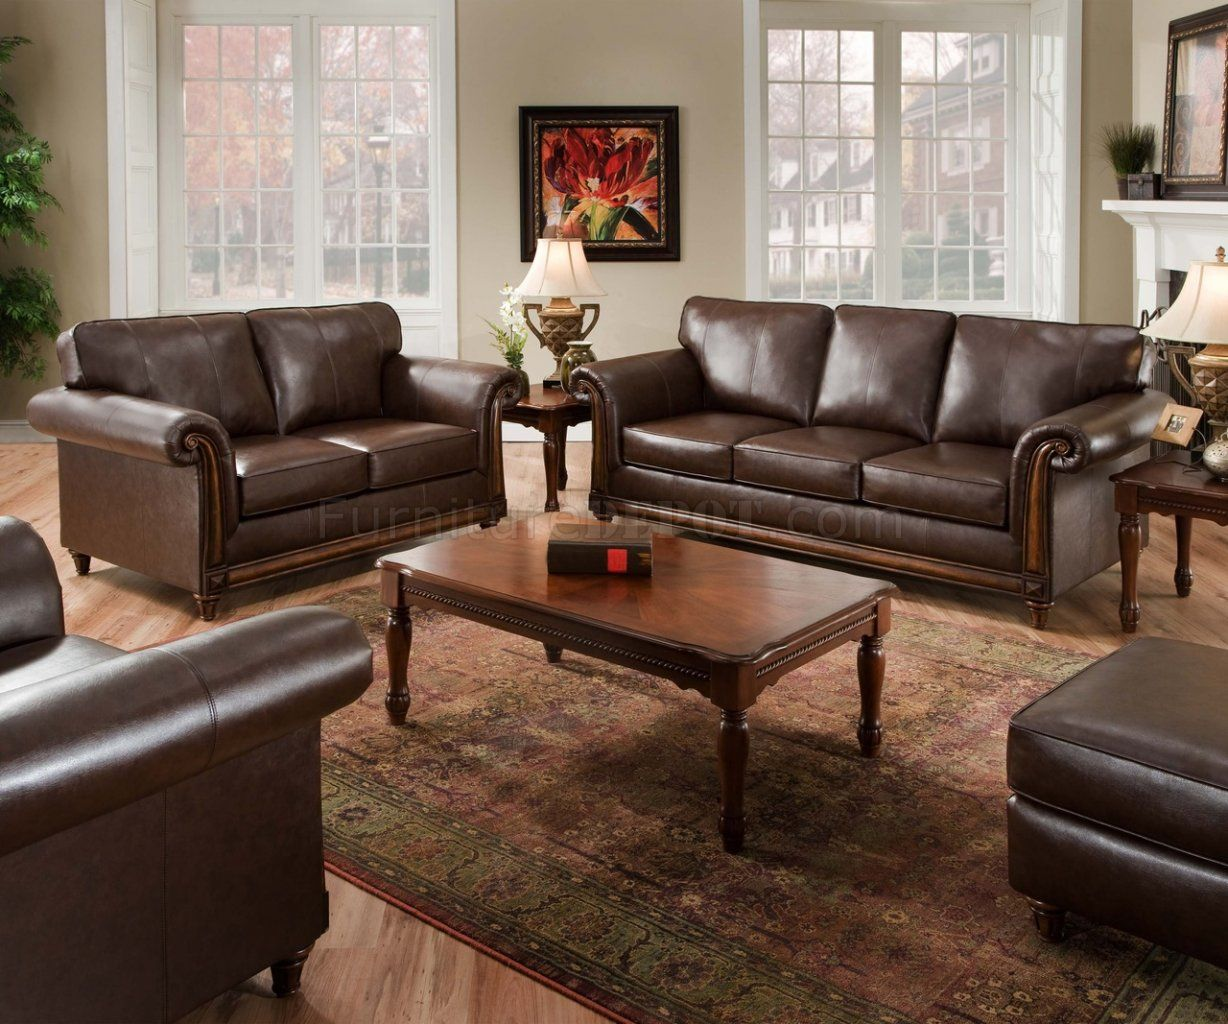 - Leather Sofa And Loveseat Set In 2020 Living Room Sets, Sofa And